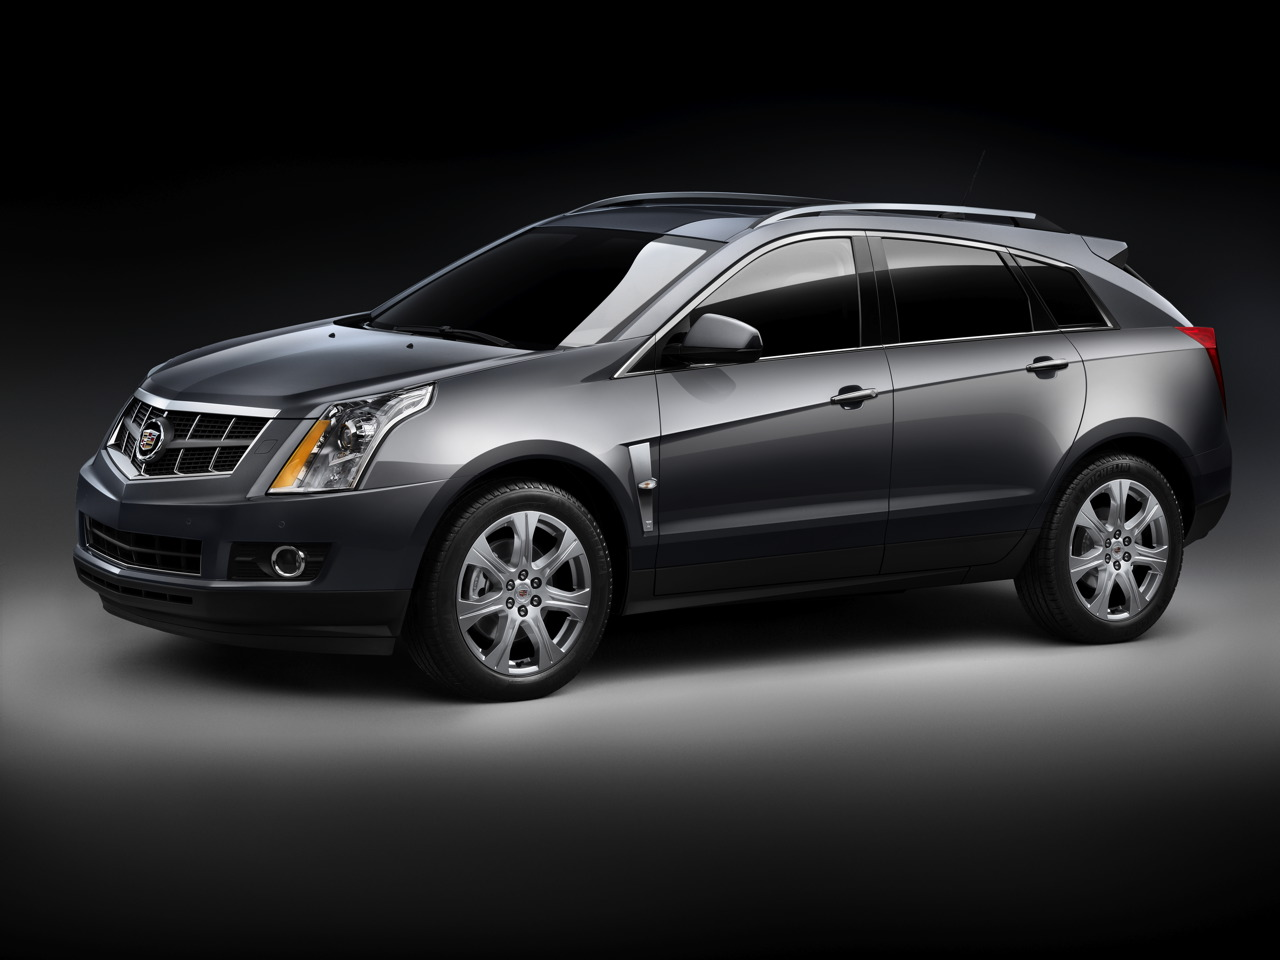 2010 Cadillac SRX Officially Unveiled Crossover Desktop Background